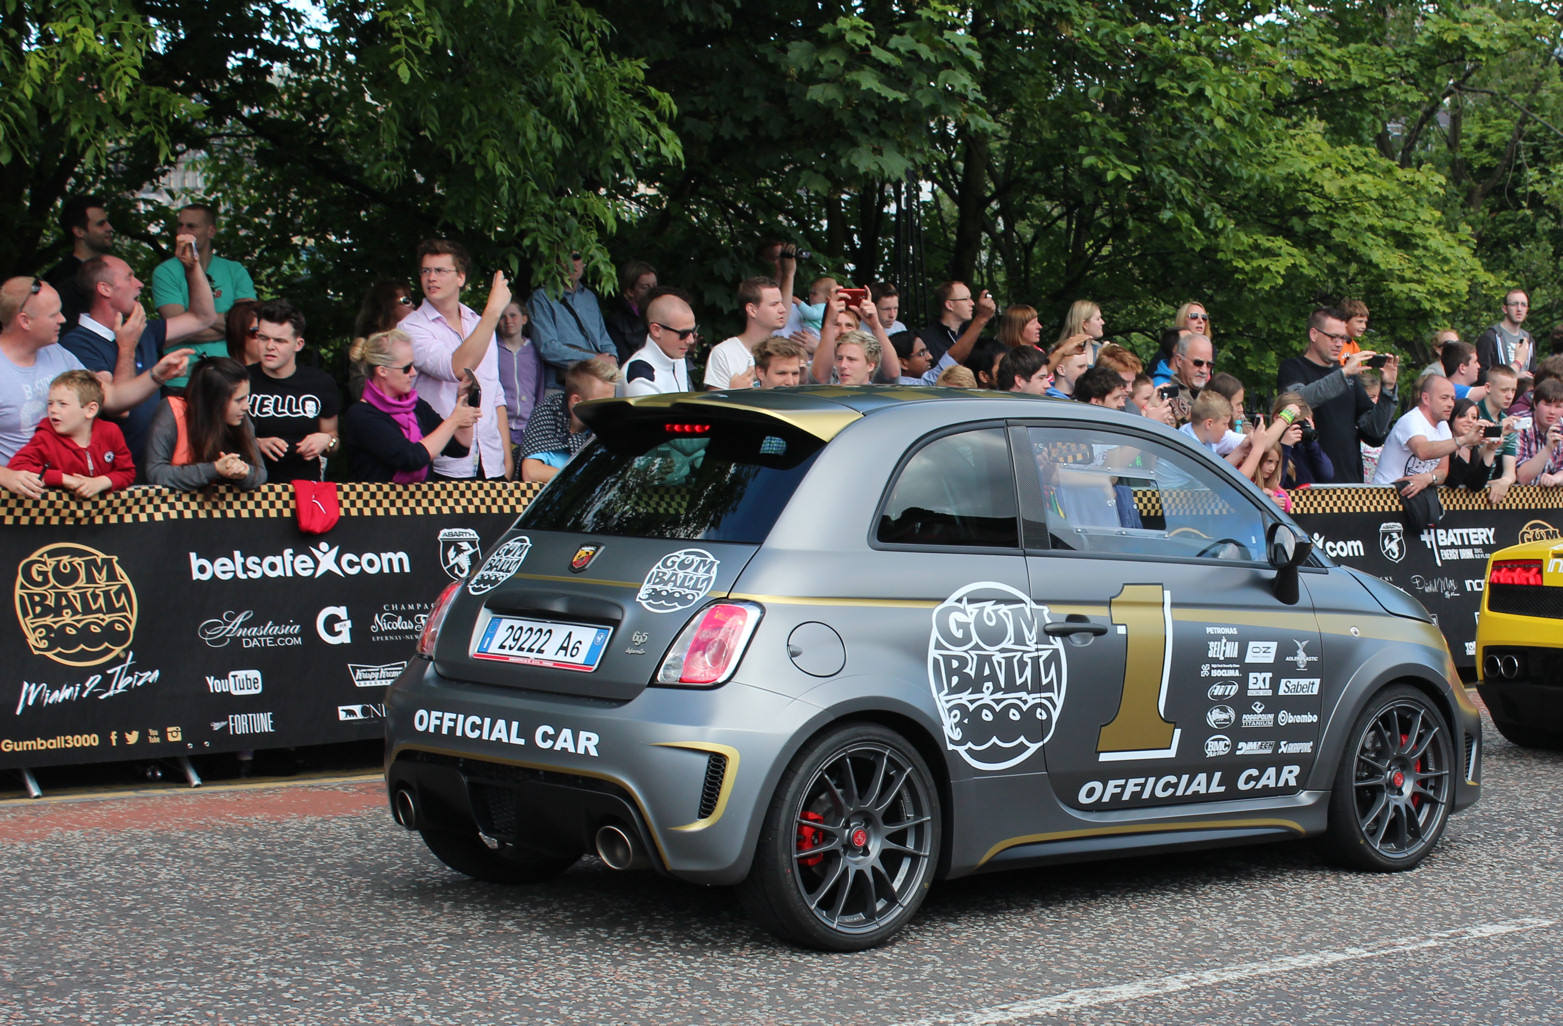 Gumball 3000 Rally 2014 In Edinburgh Austin Tate S Blog